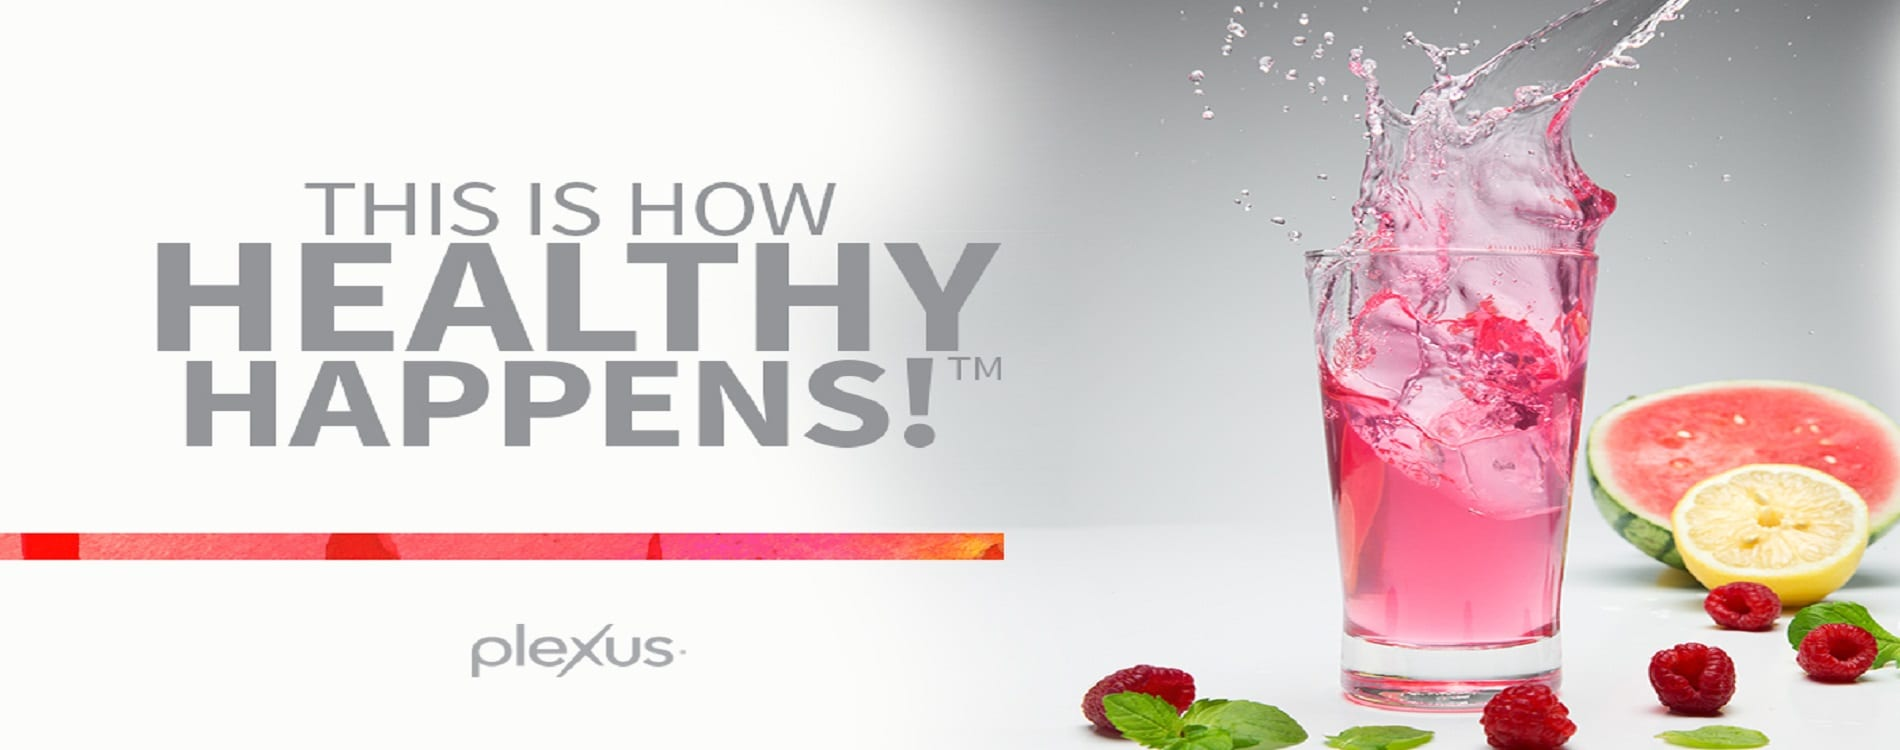 plexus this is how healthy happens